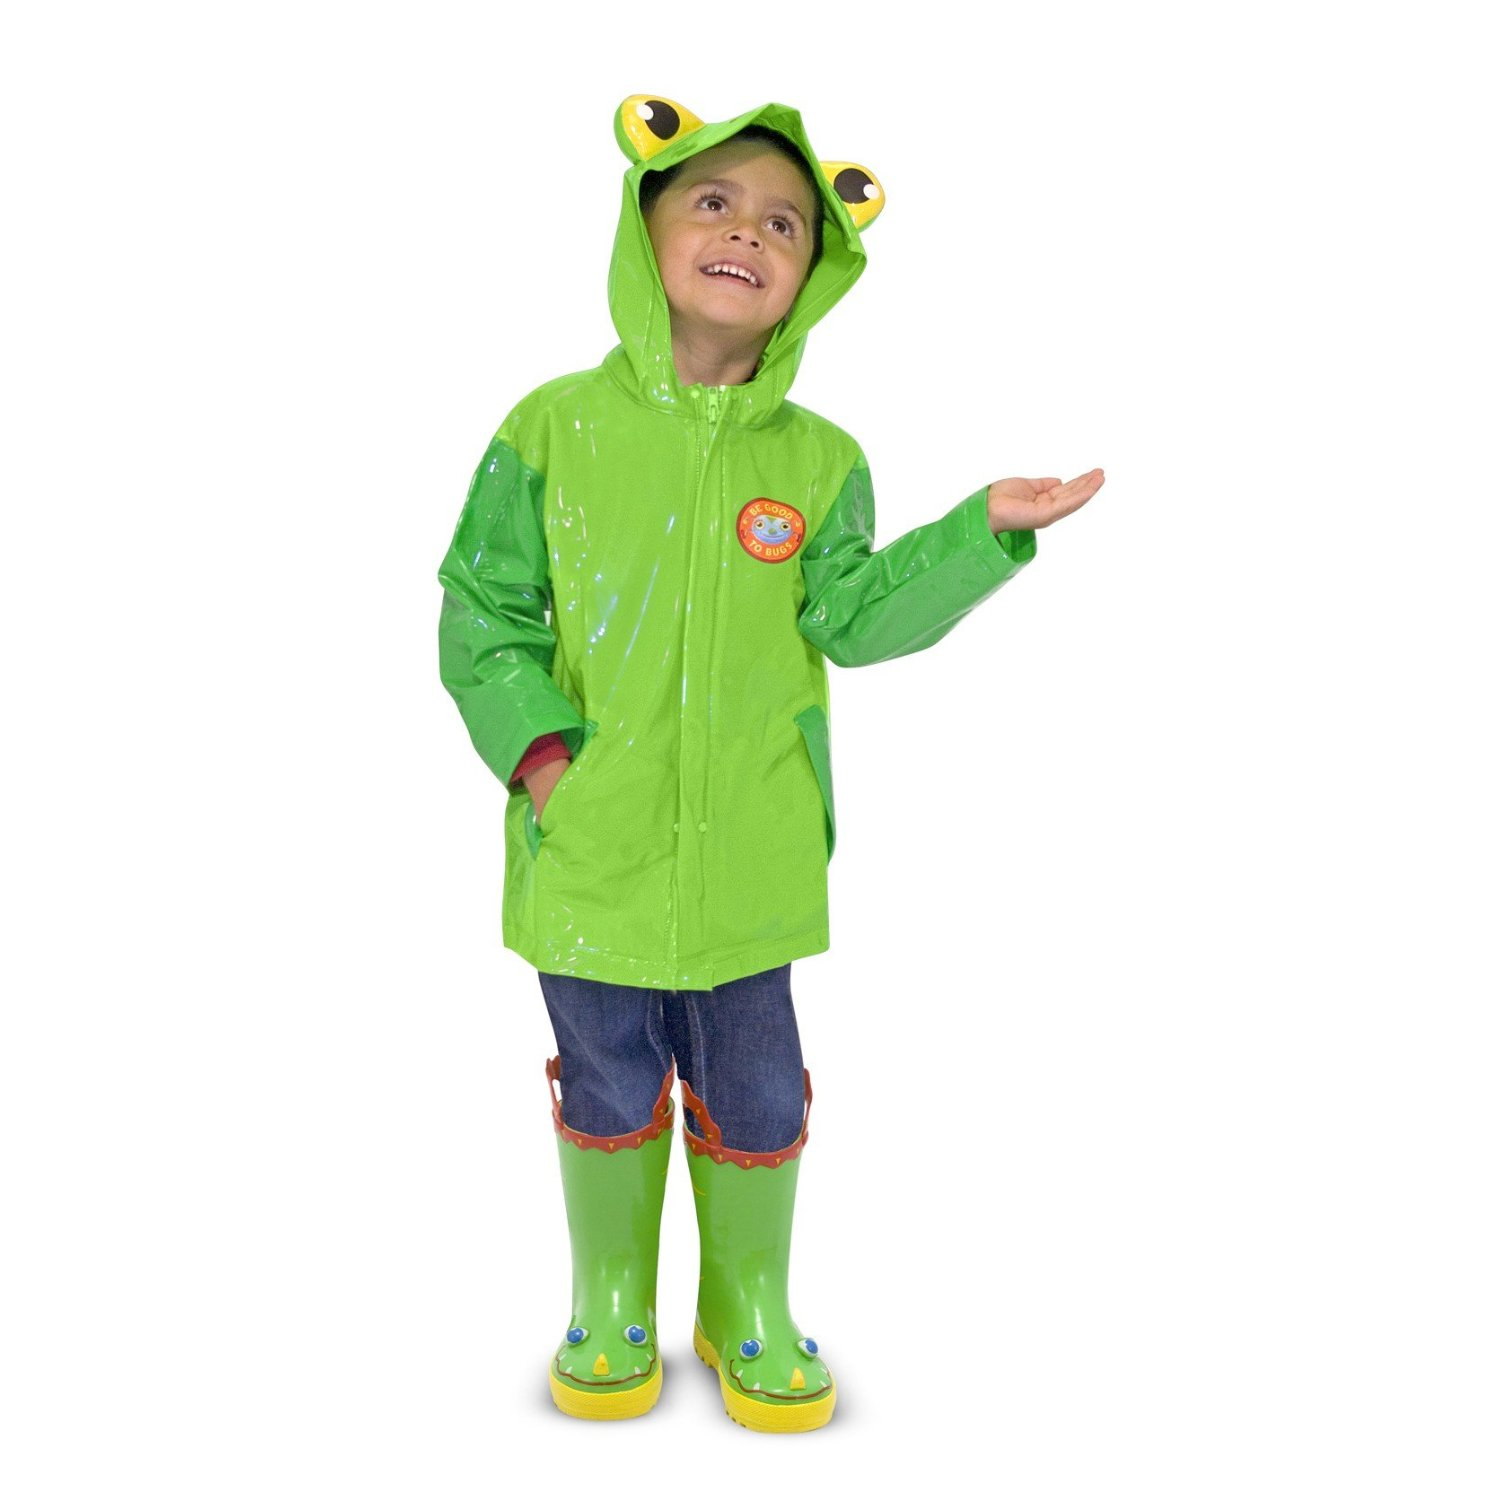 Pictures Of Raincoats - Cliparts.co